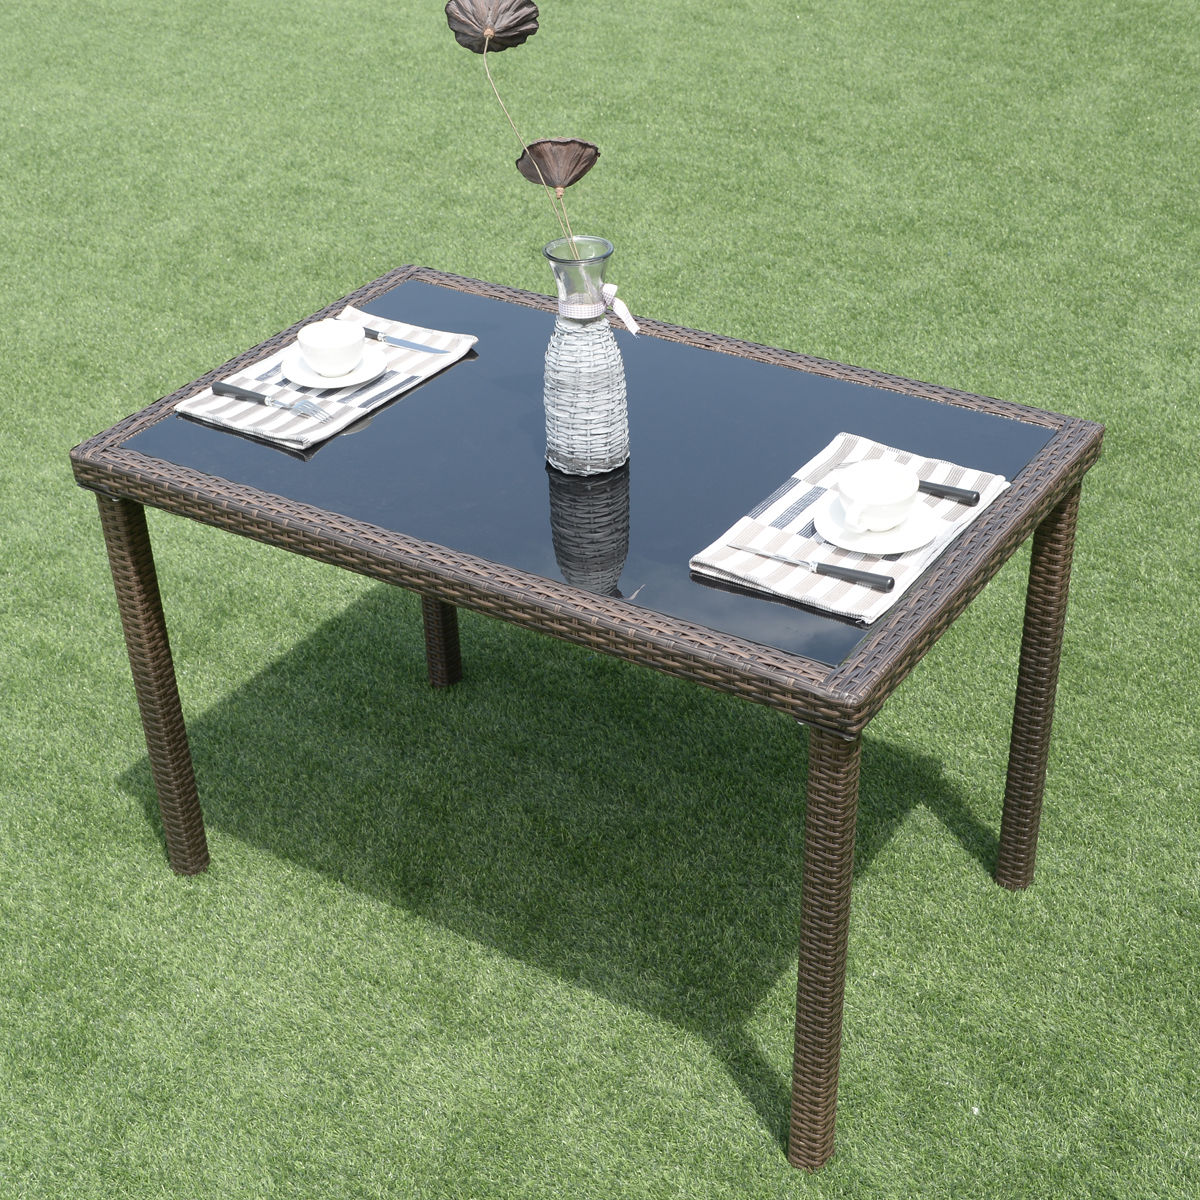 Costway 43u0027u0027 Glass Table Patio Outdoor Wicker Rectangular Dining Table  Garden Furniture